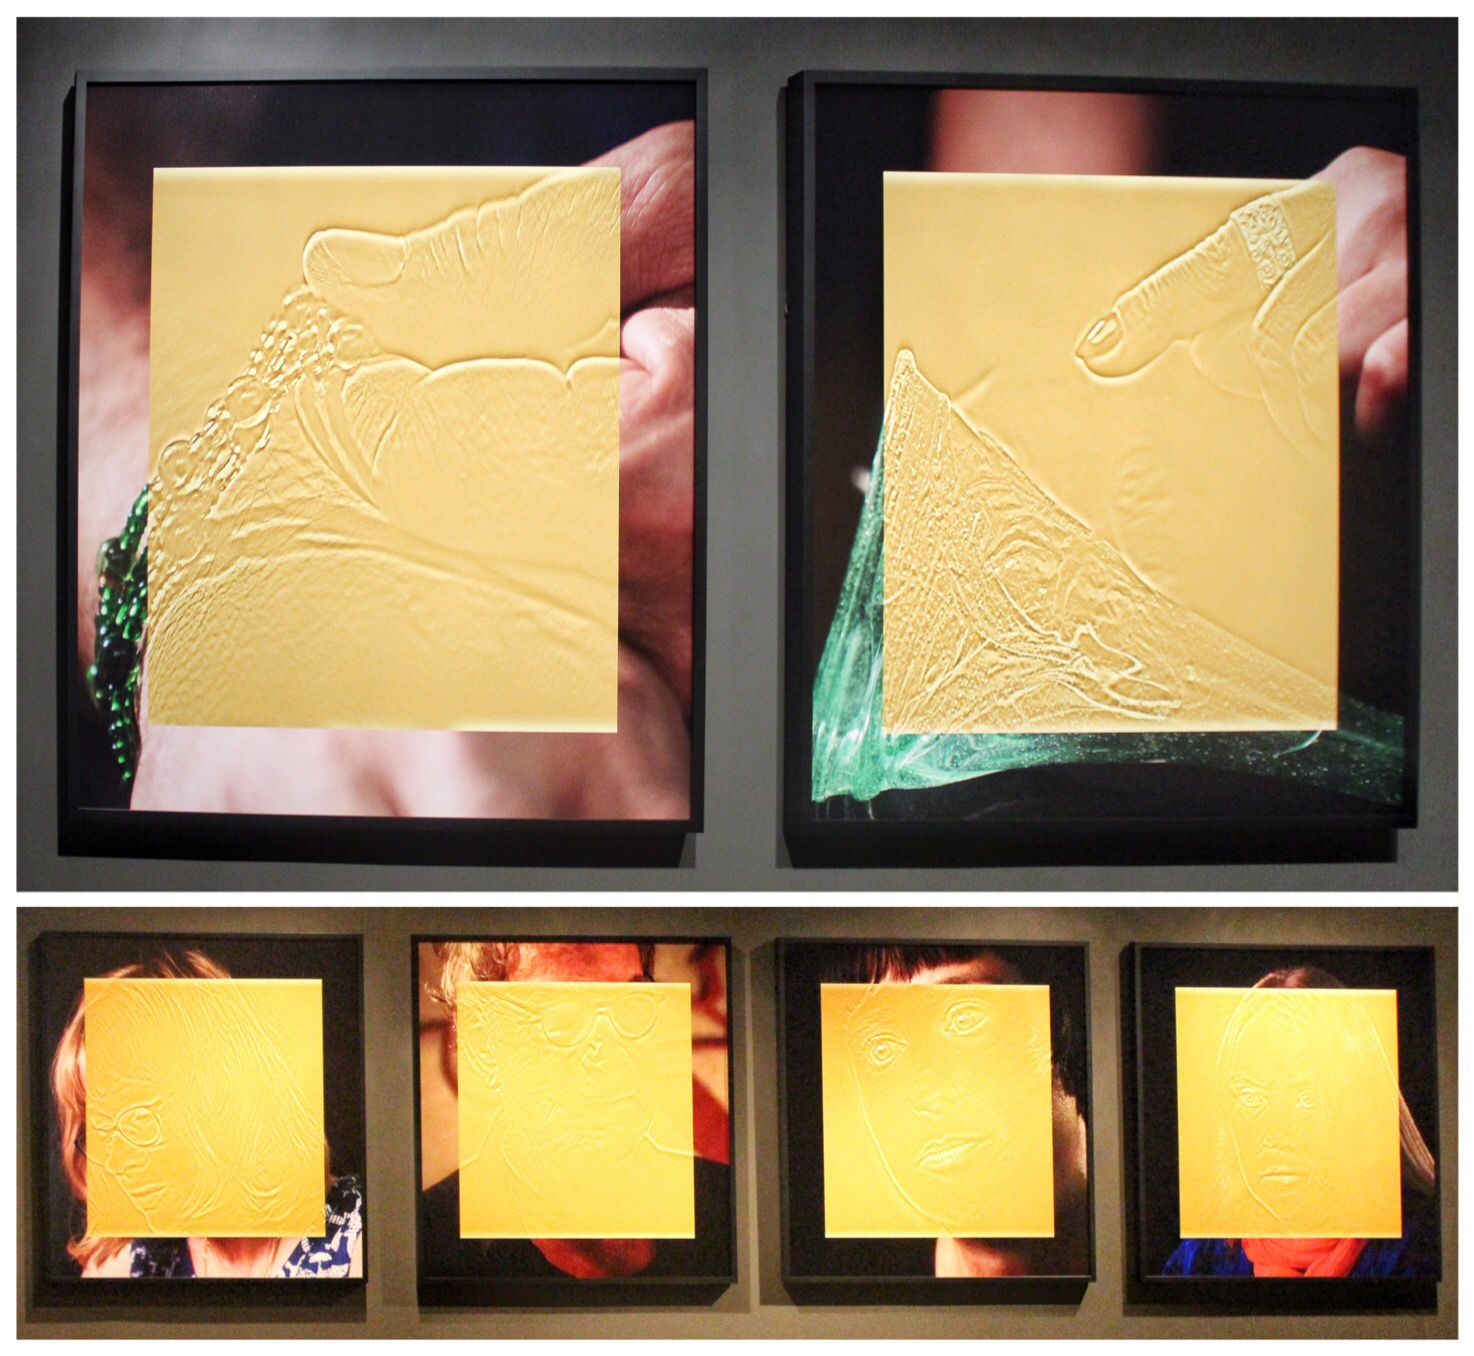 1. & 2. Esther Shalev-Gerz,  The Gold Room  (details), 2016, natural pigments on archival paper.